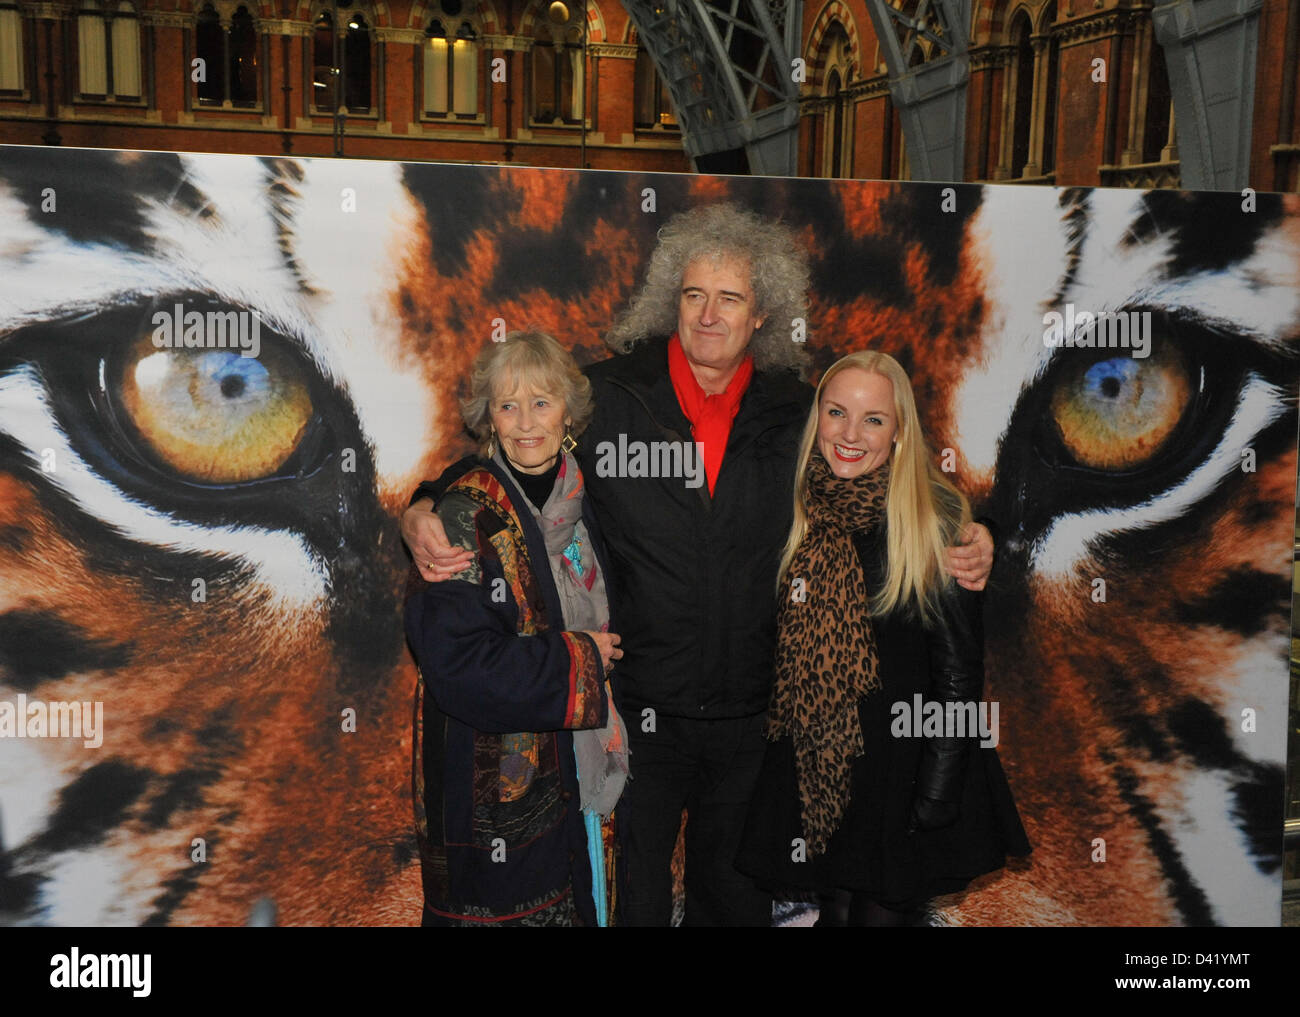 St Pancras Station, London. UK. 1st March 2013. Brian May, Virginia McKenna and Kerry Ellis at the live event to Stock Photo